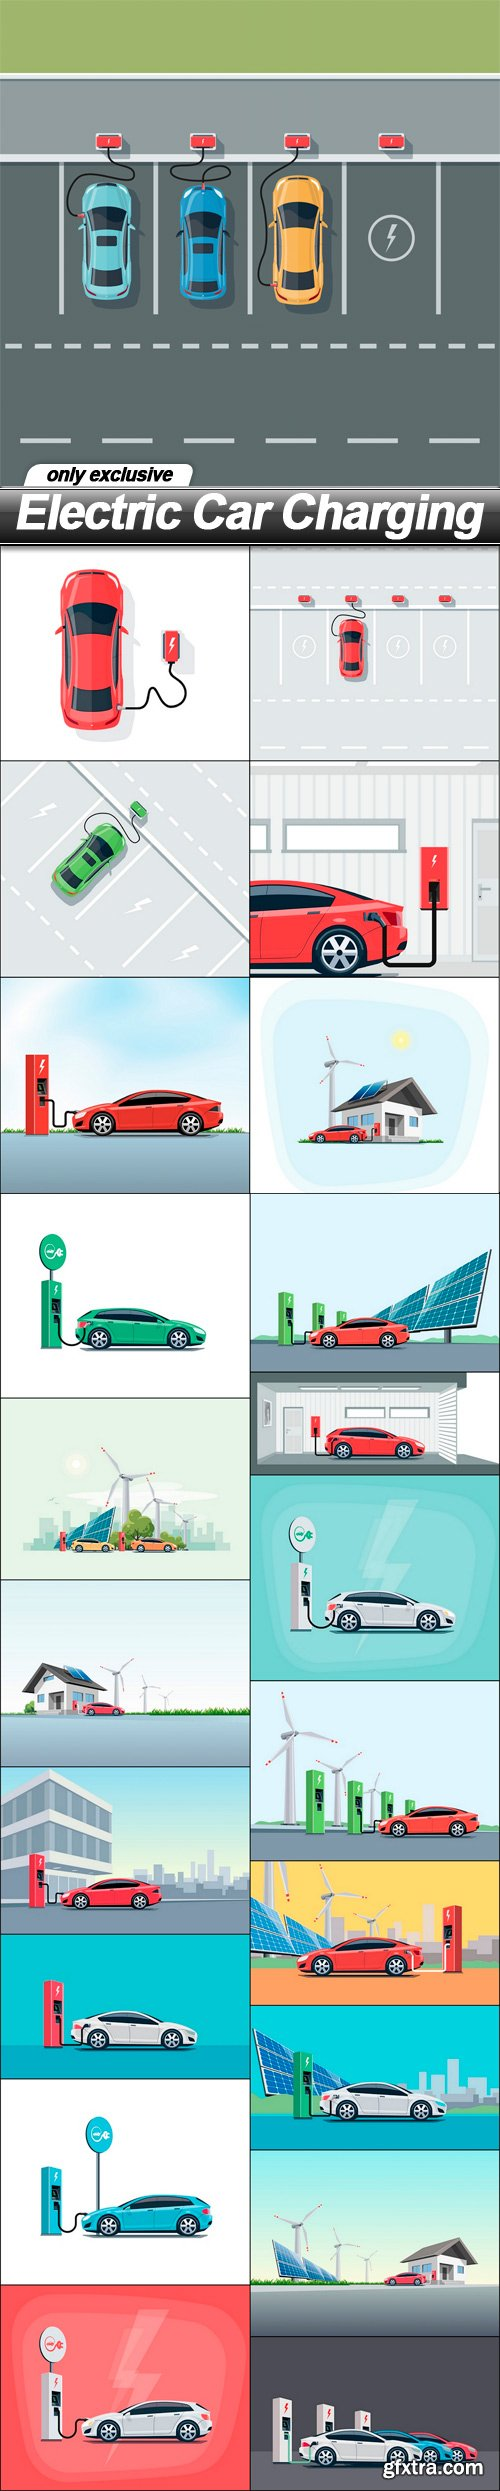 Electric Car Charging - 22 EPS